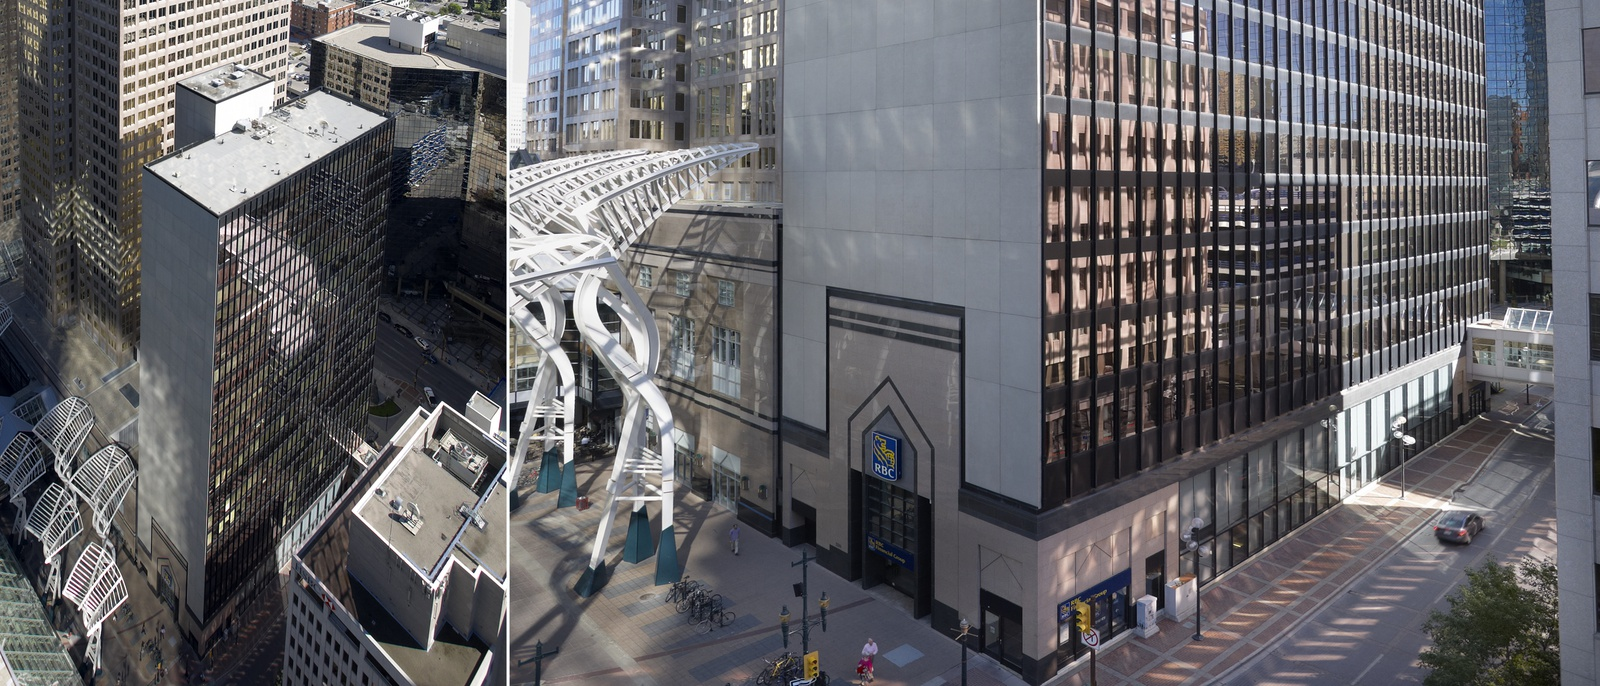 Two photos of a narrow glass building: one from above, and one from the street. A sign is on it that says RBC.